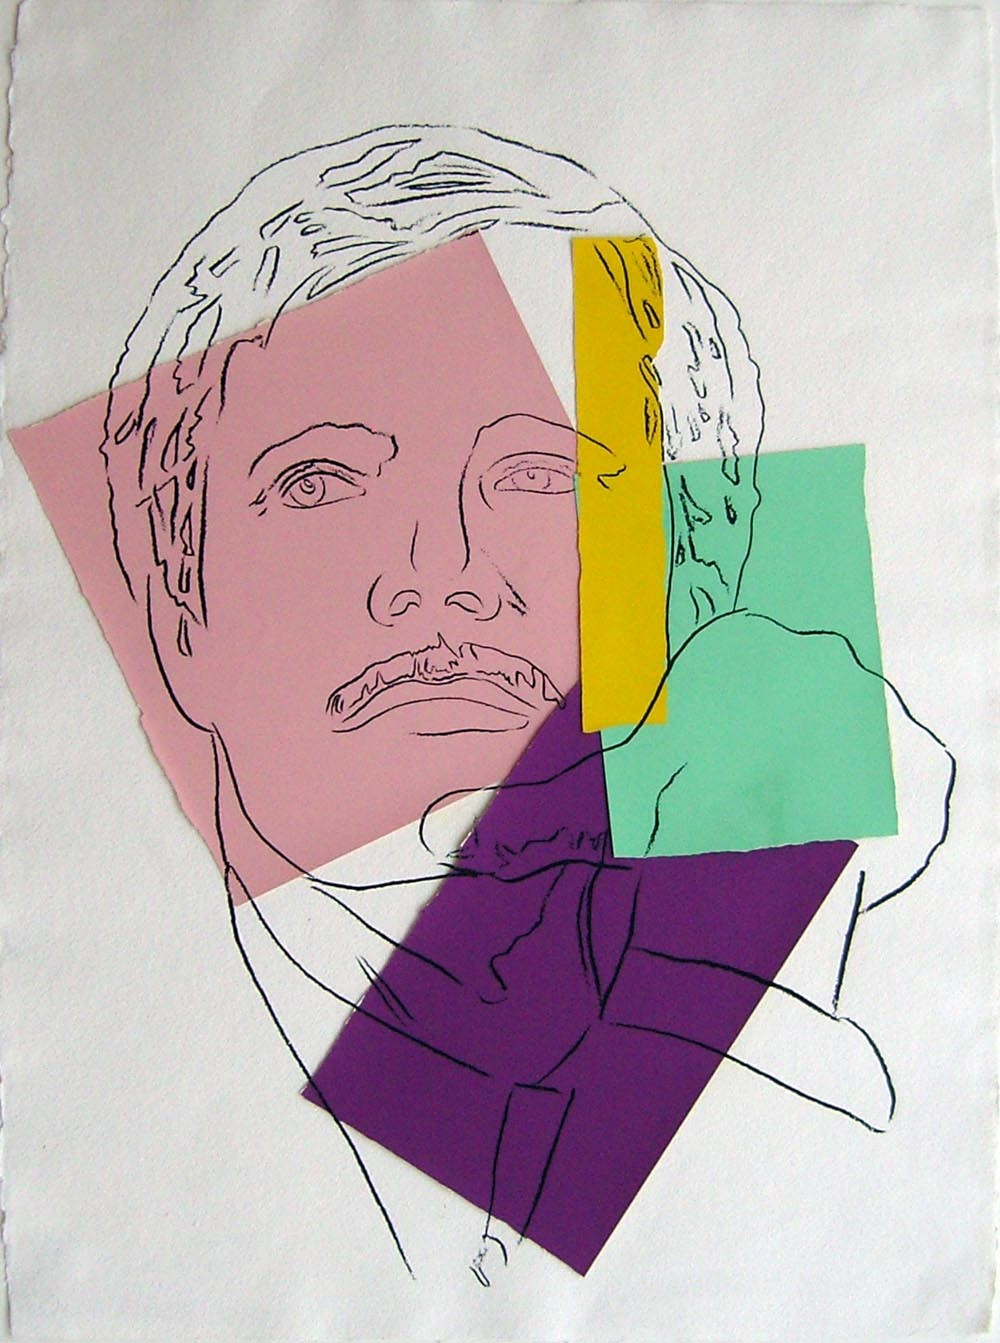 Andy Warhol | Ted Turner | 1986 | Image of Artists' work.